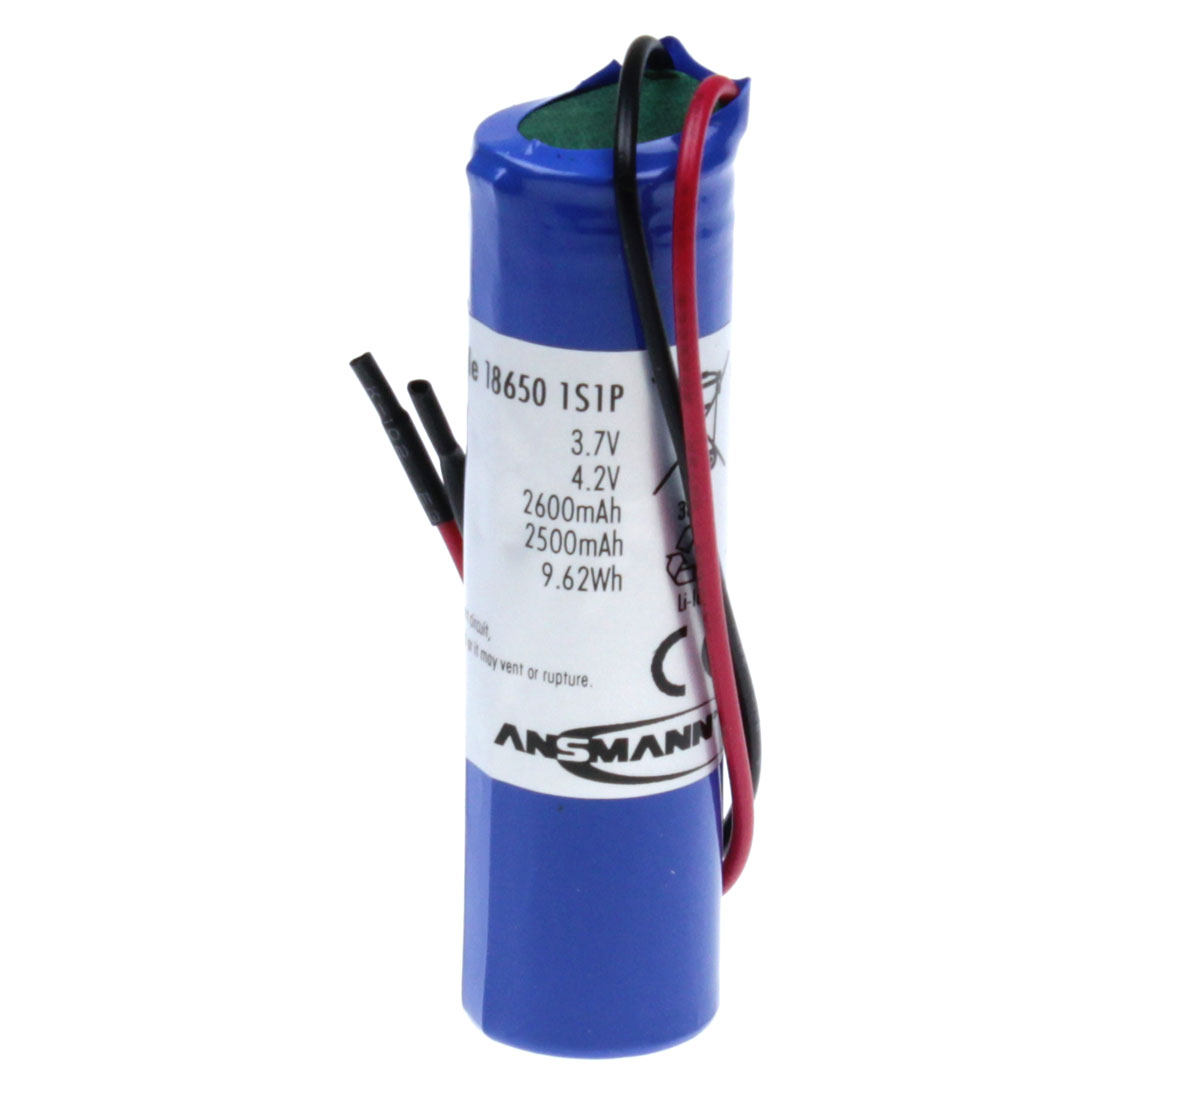 Ansmann Industrial 1S1P 3.7V 2600mAh Rechargeable Li-ion Battery Pack